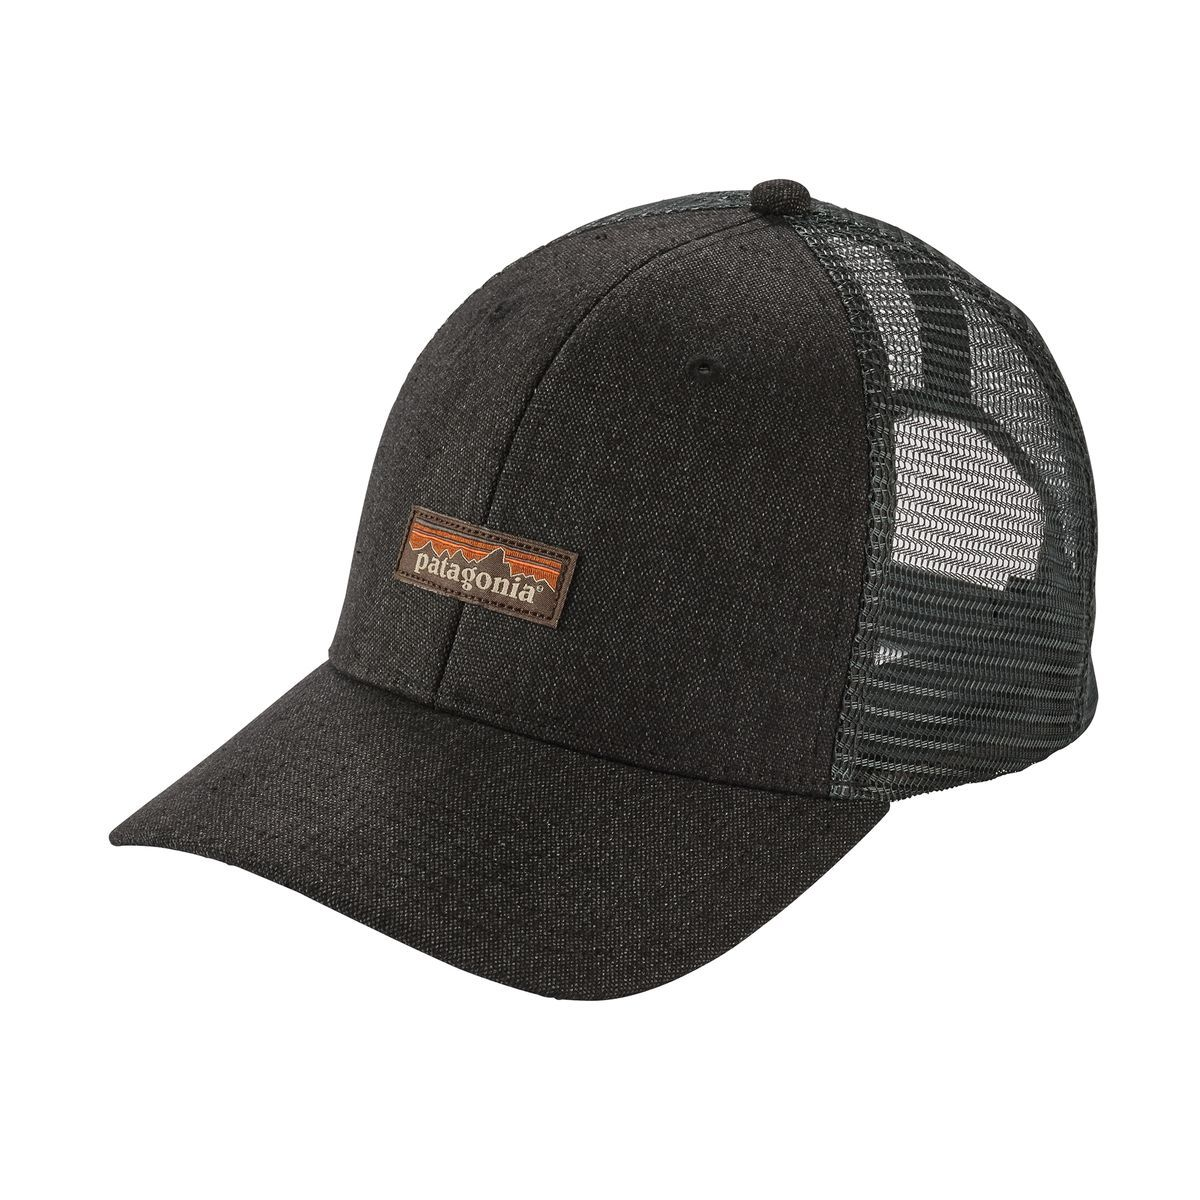 Patagonia Tin Shed Work Hat: Mesh Cap, Tin Shed, Mesh